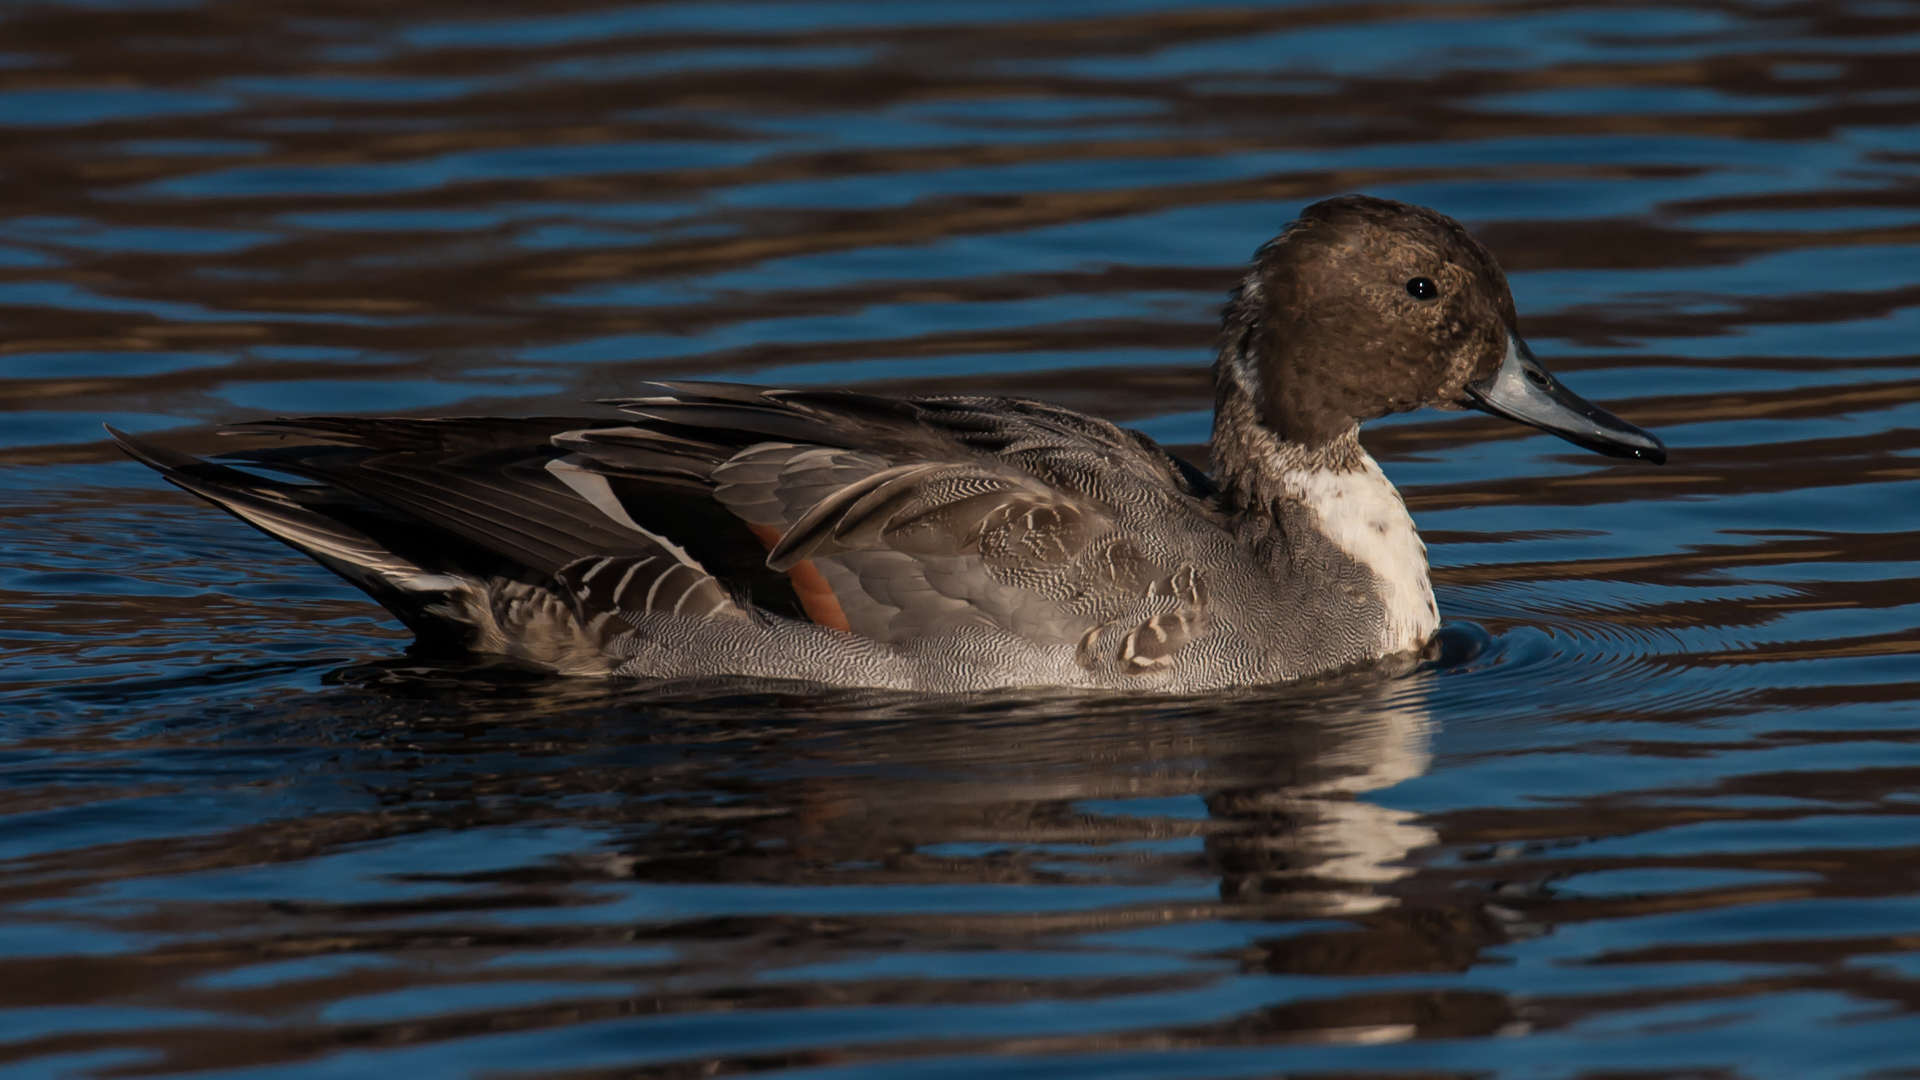 And my favourite of our ducks, the northern pintail.